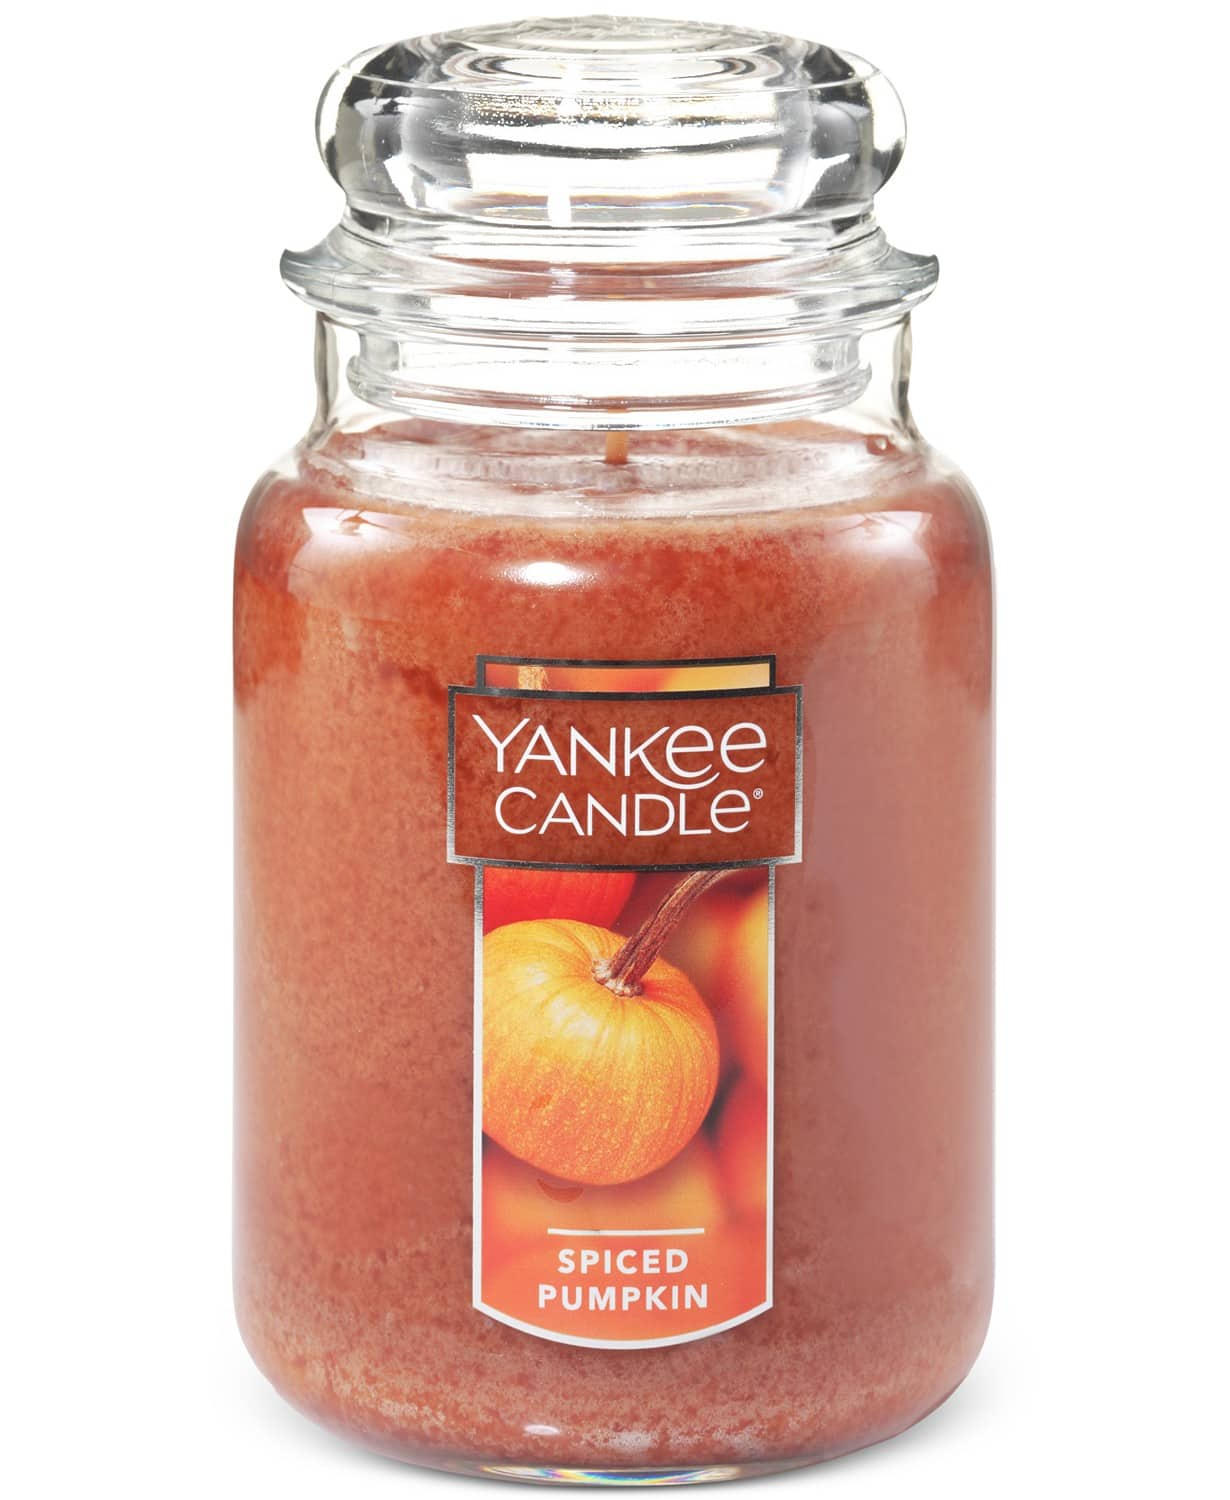 Yankee Candle: 22-oz Large Jar (spiced pumpkin) $6.39, Mini Reed Diffuser  (spiced pumpkin) $2.39, More + free store pickup at Macys